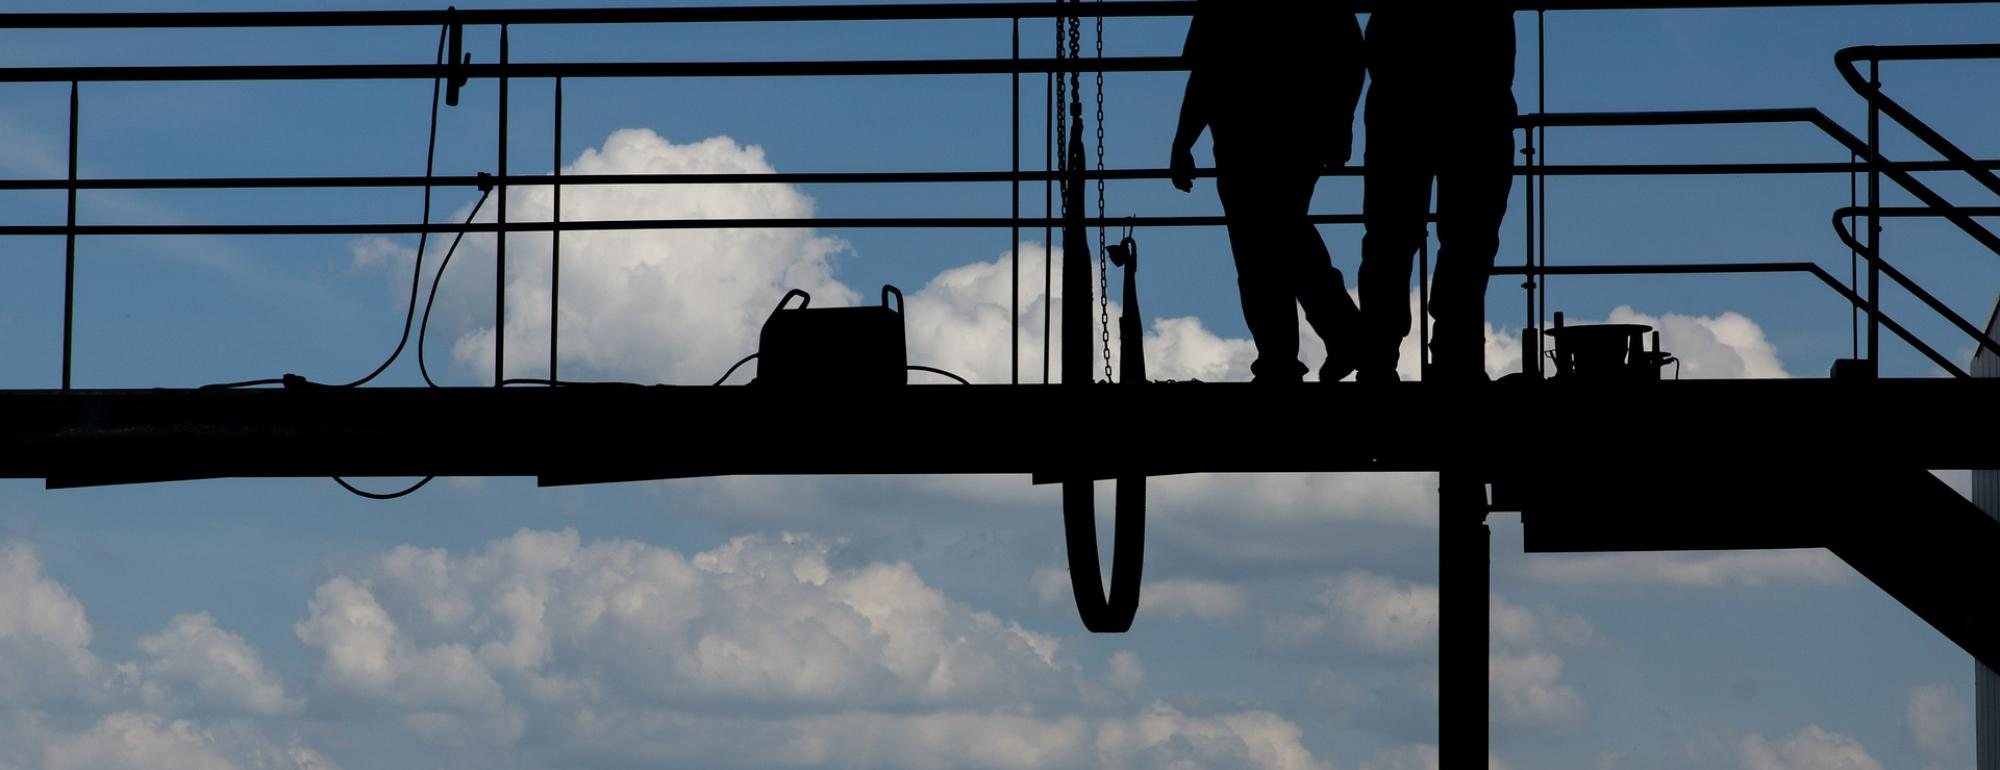 men in hardhats on scaffolding with blue sky in background